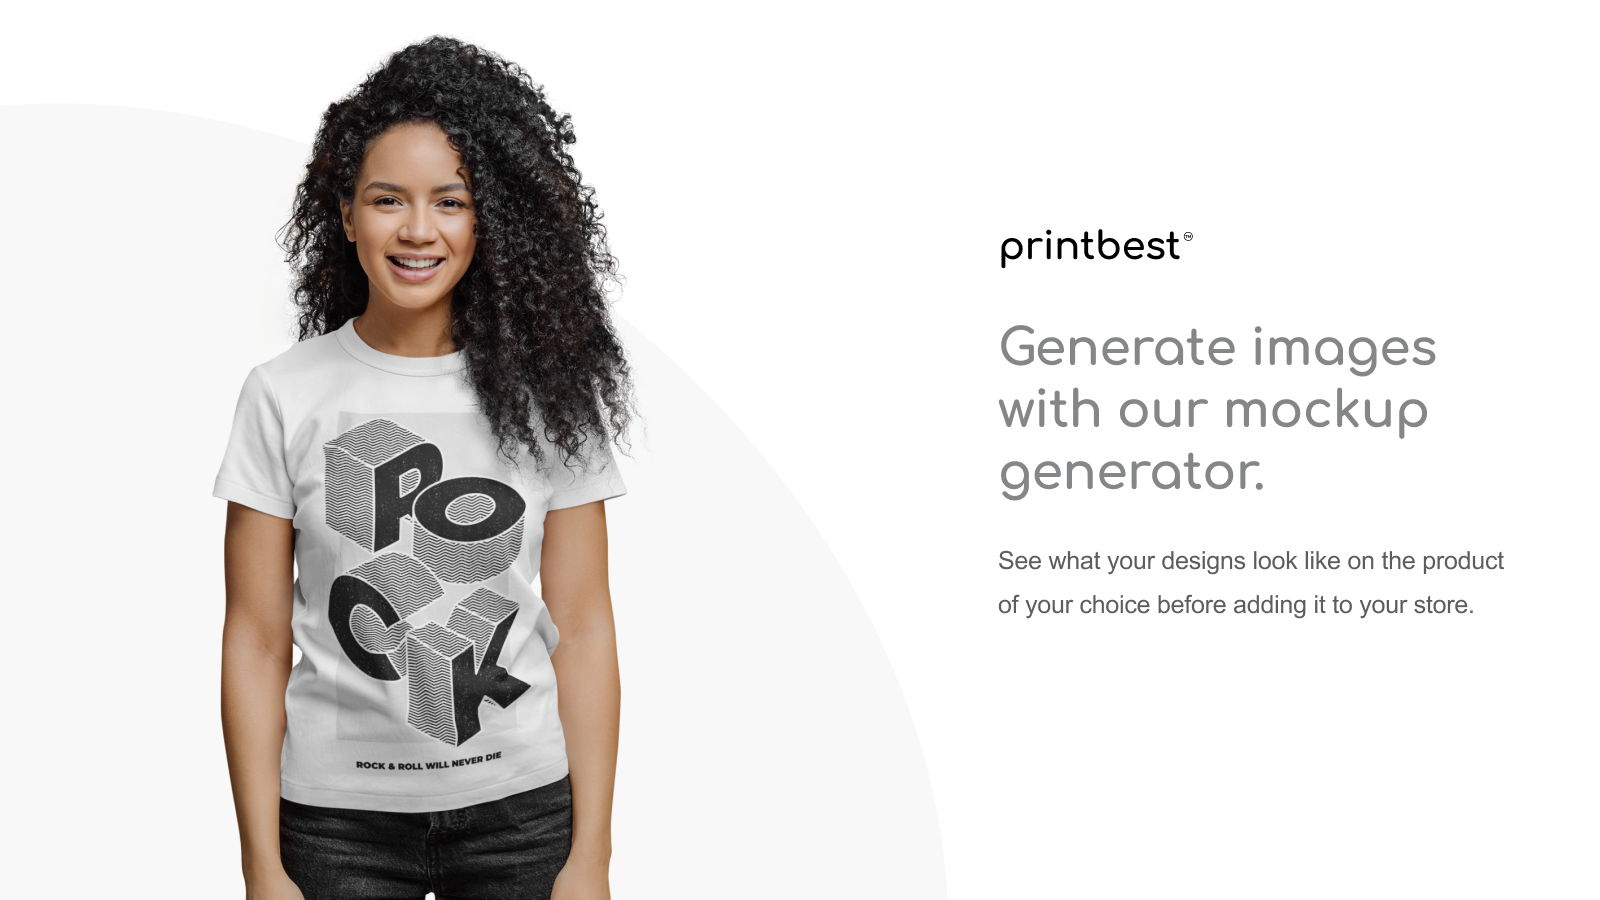 Generate images with our mockup generator